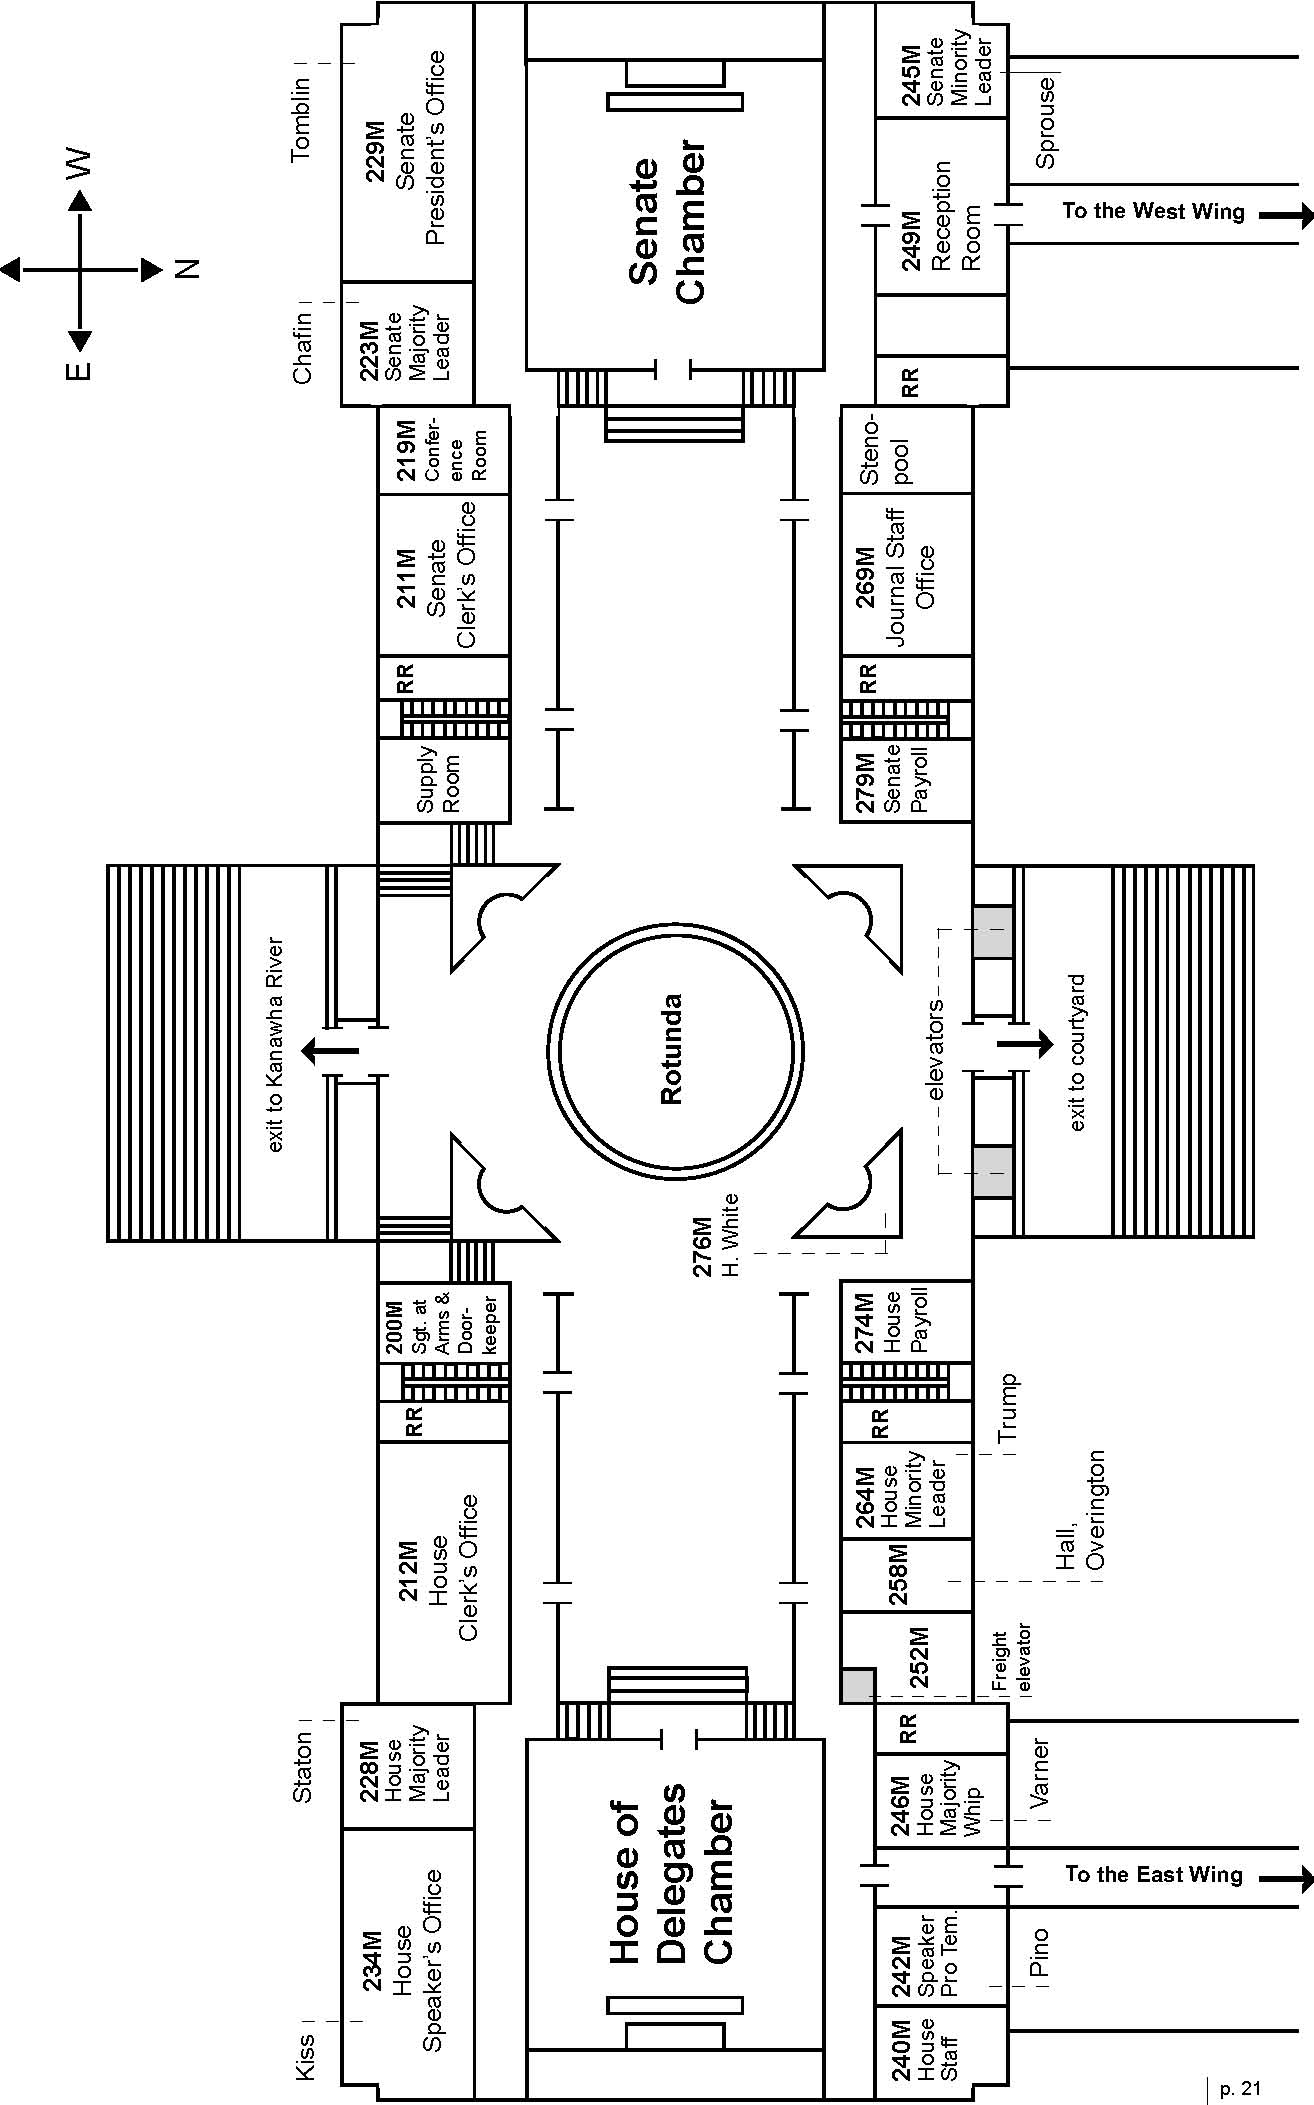 Capitol Complex Map Map Directions Parking Map Other Maps US - Us congress building map